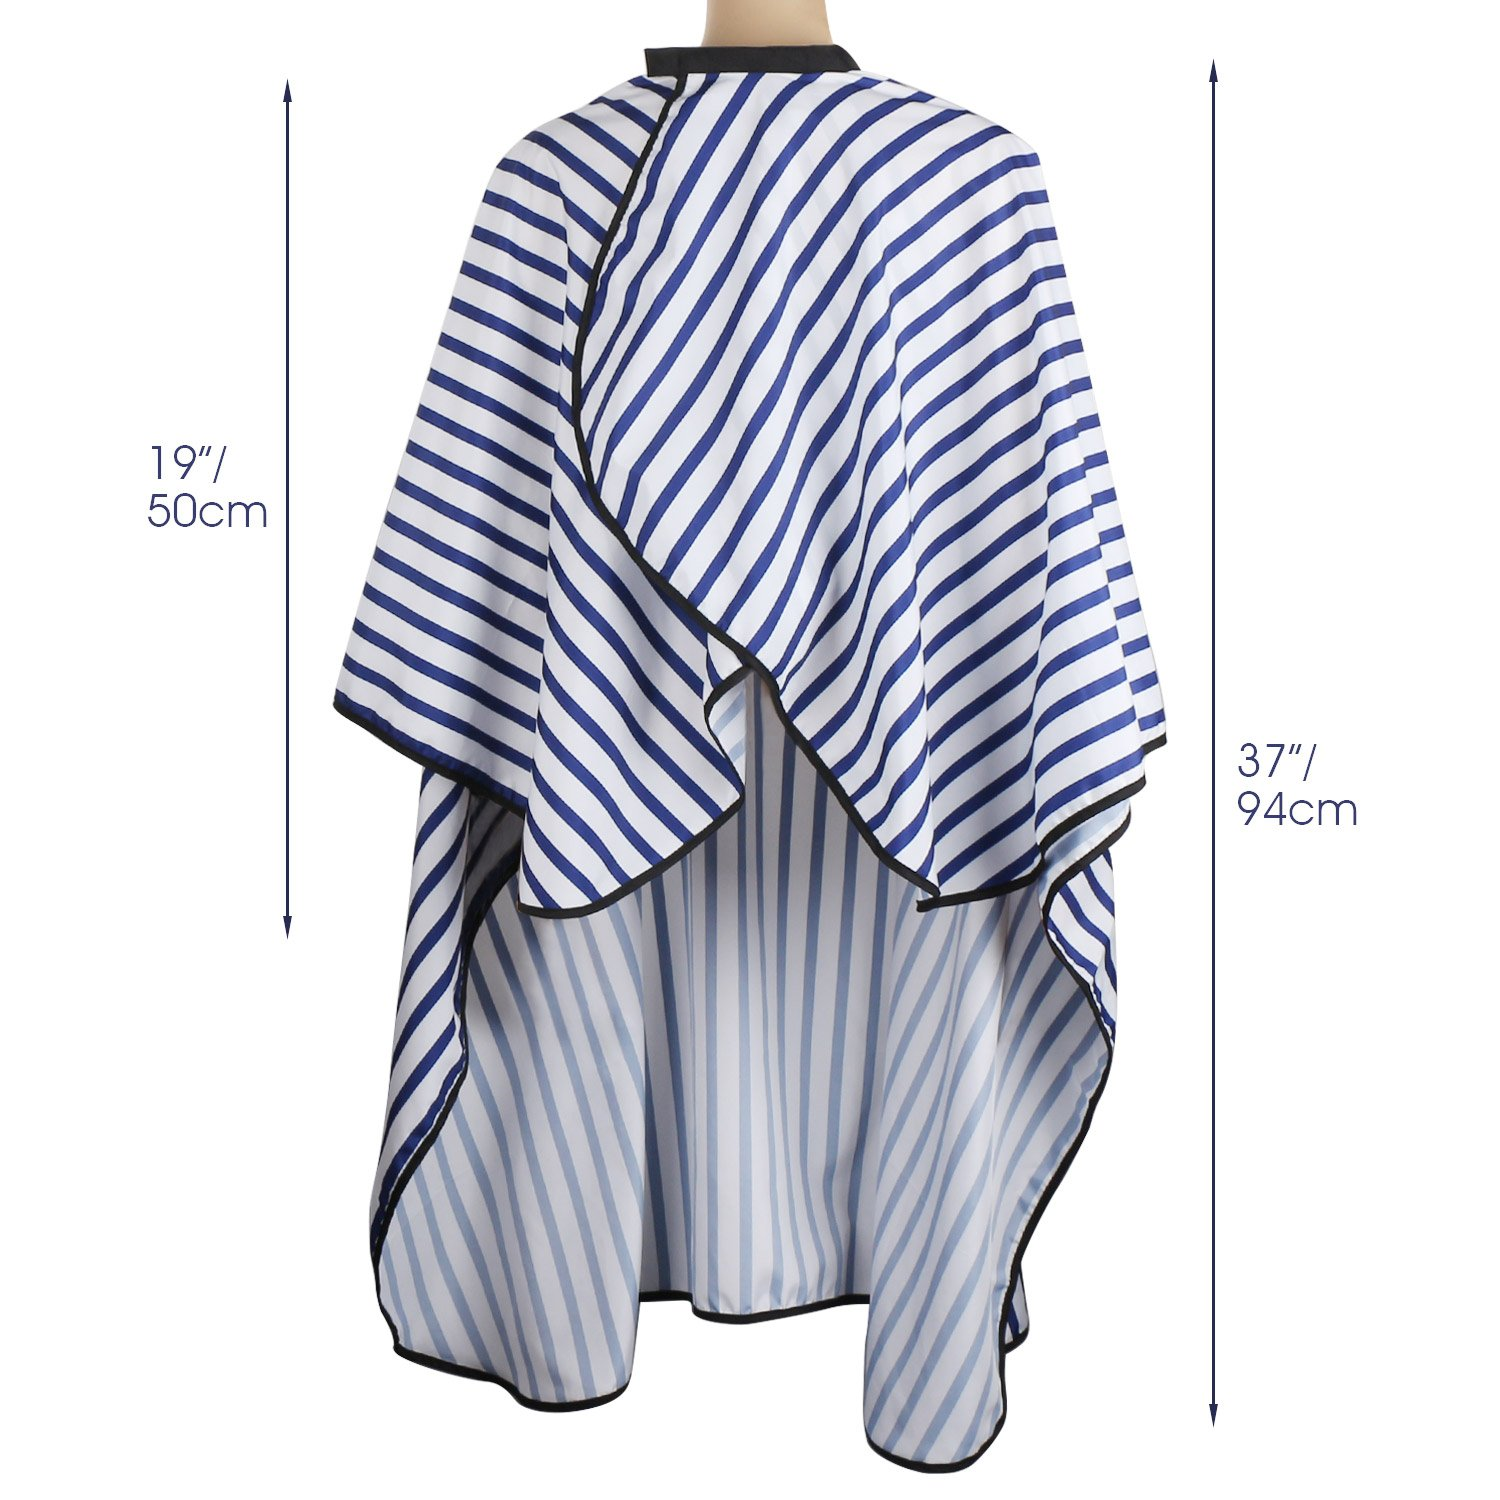 Hair Salon Cutting Cape, Segbeauty Professional Barbers Hairdressing Gown with Hook & Loop Closure, 19'' X 37'' Long Silky Waterproof Makeup Cape - Blue Striped